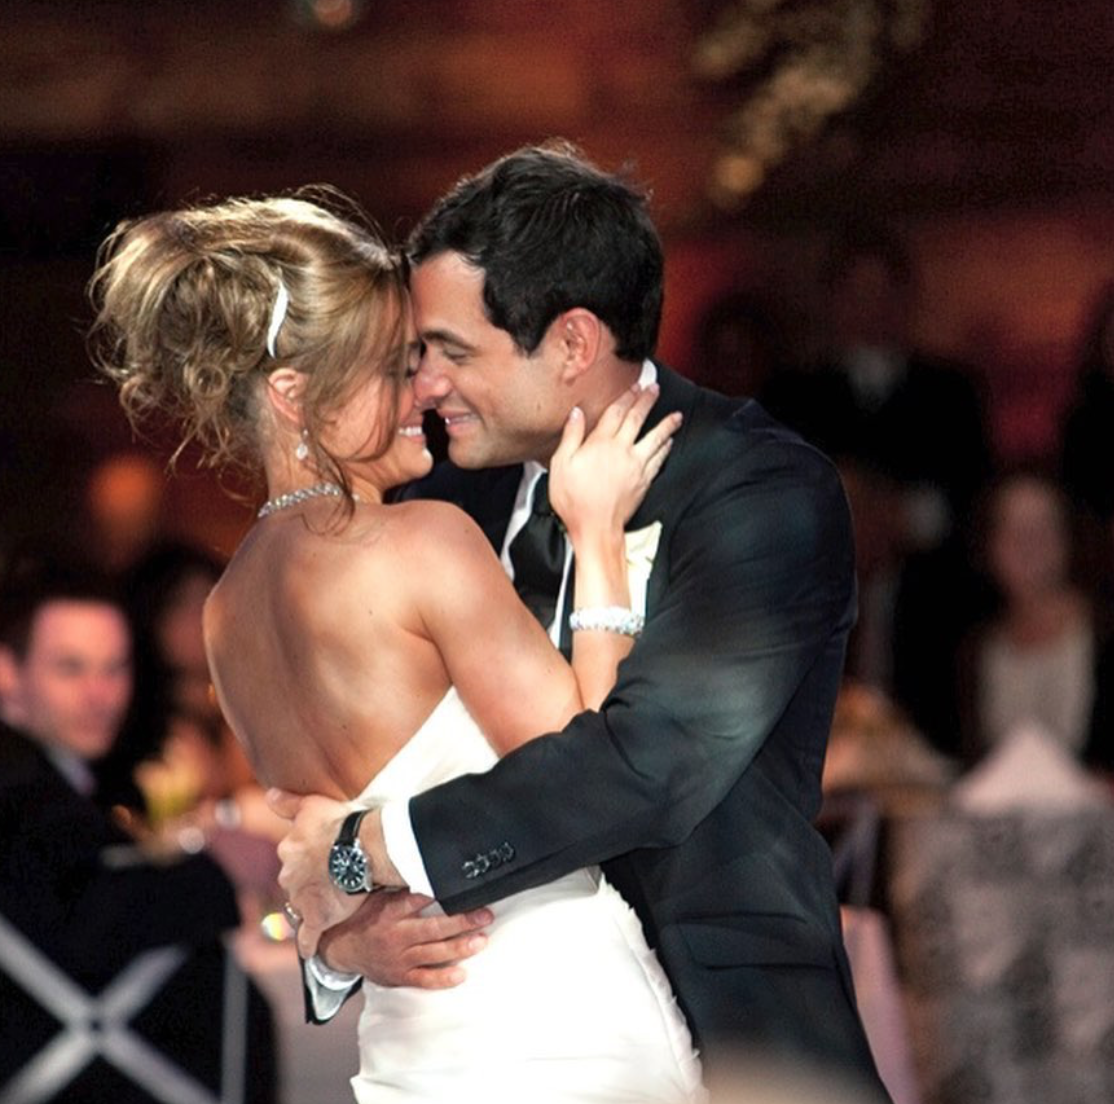 Jason and Molly Mesnick's wedding day. (Image: ABC)